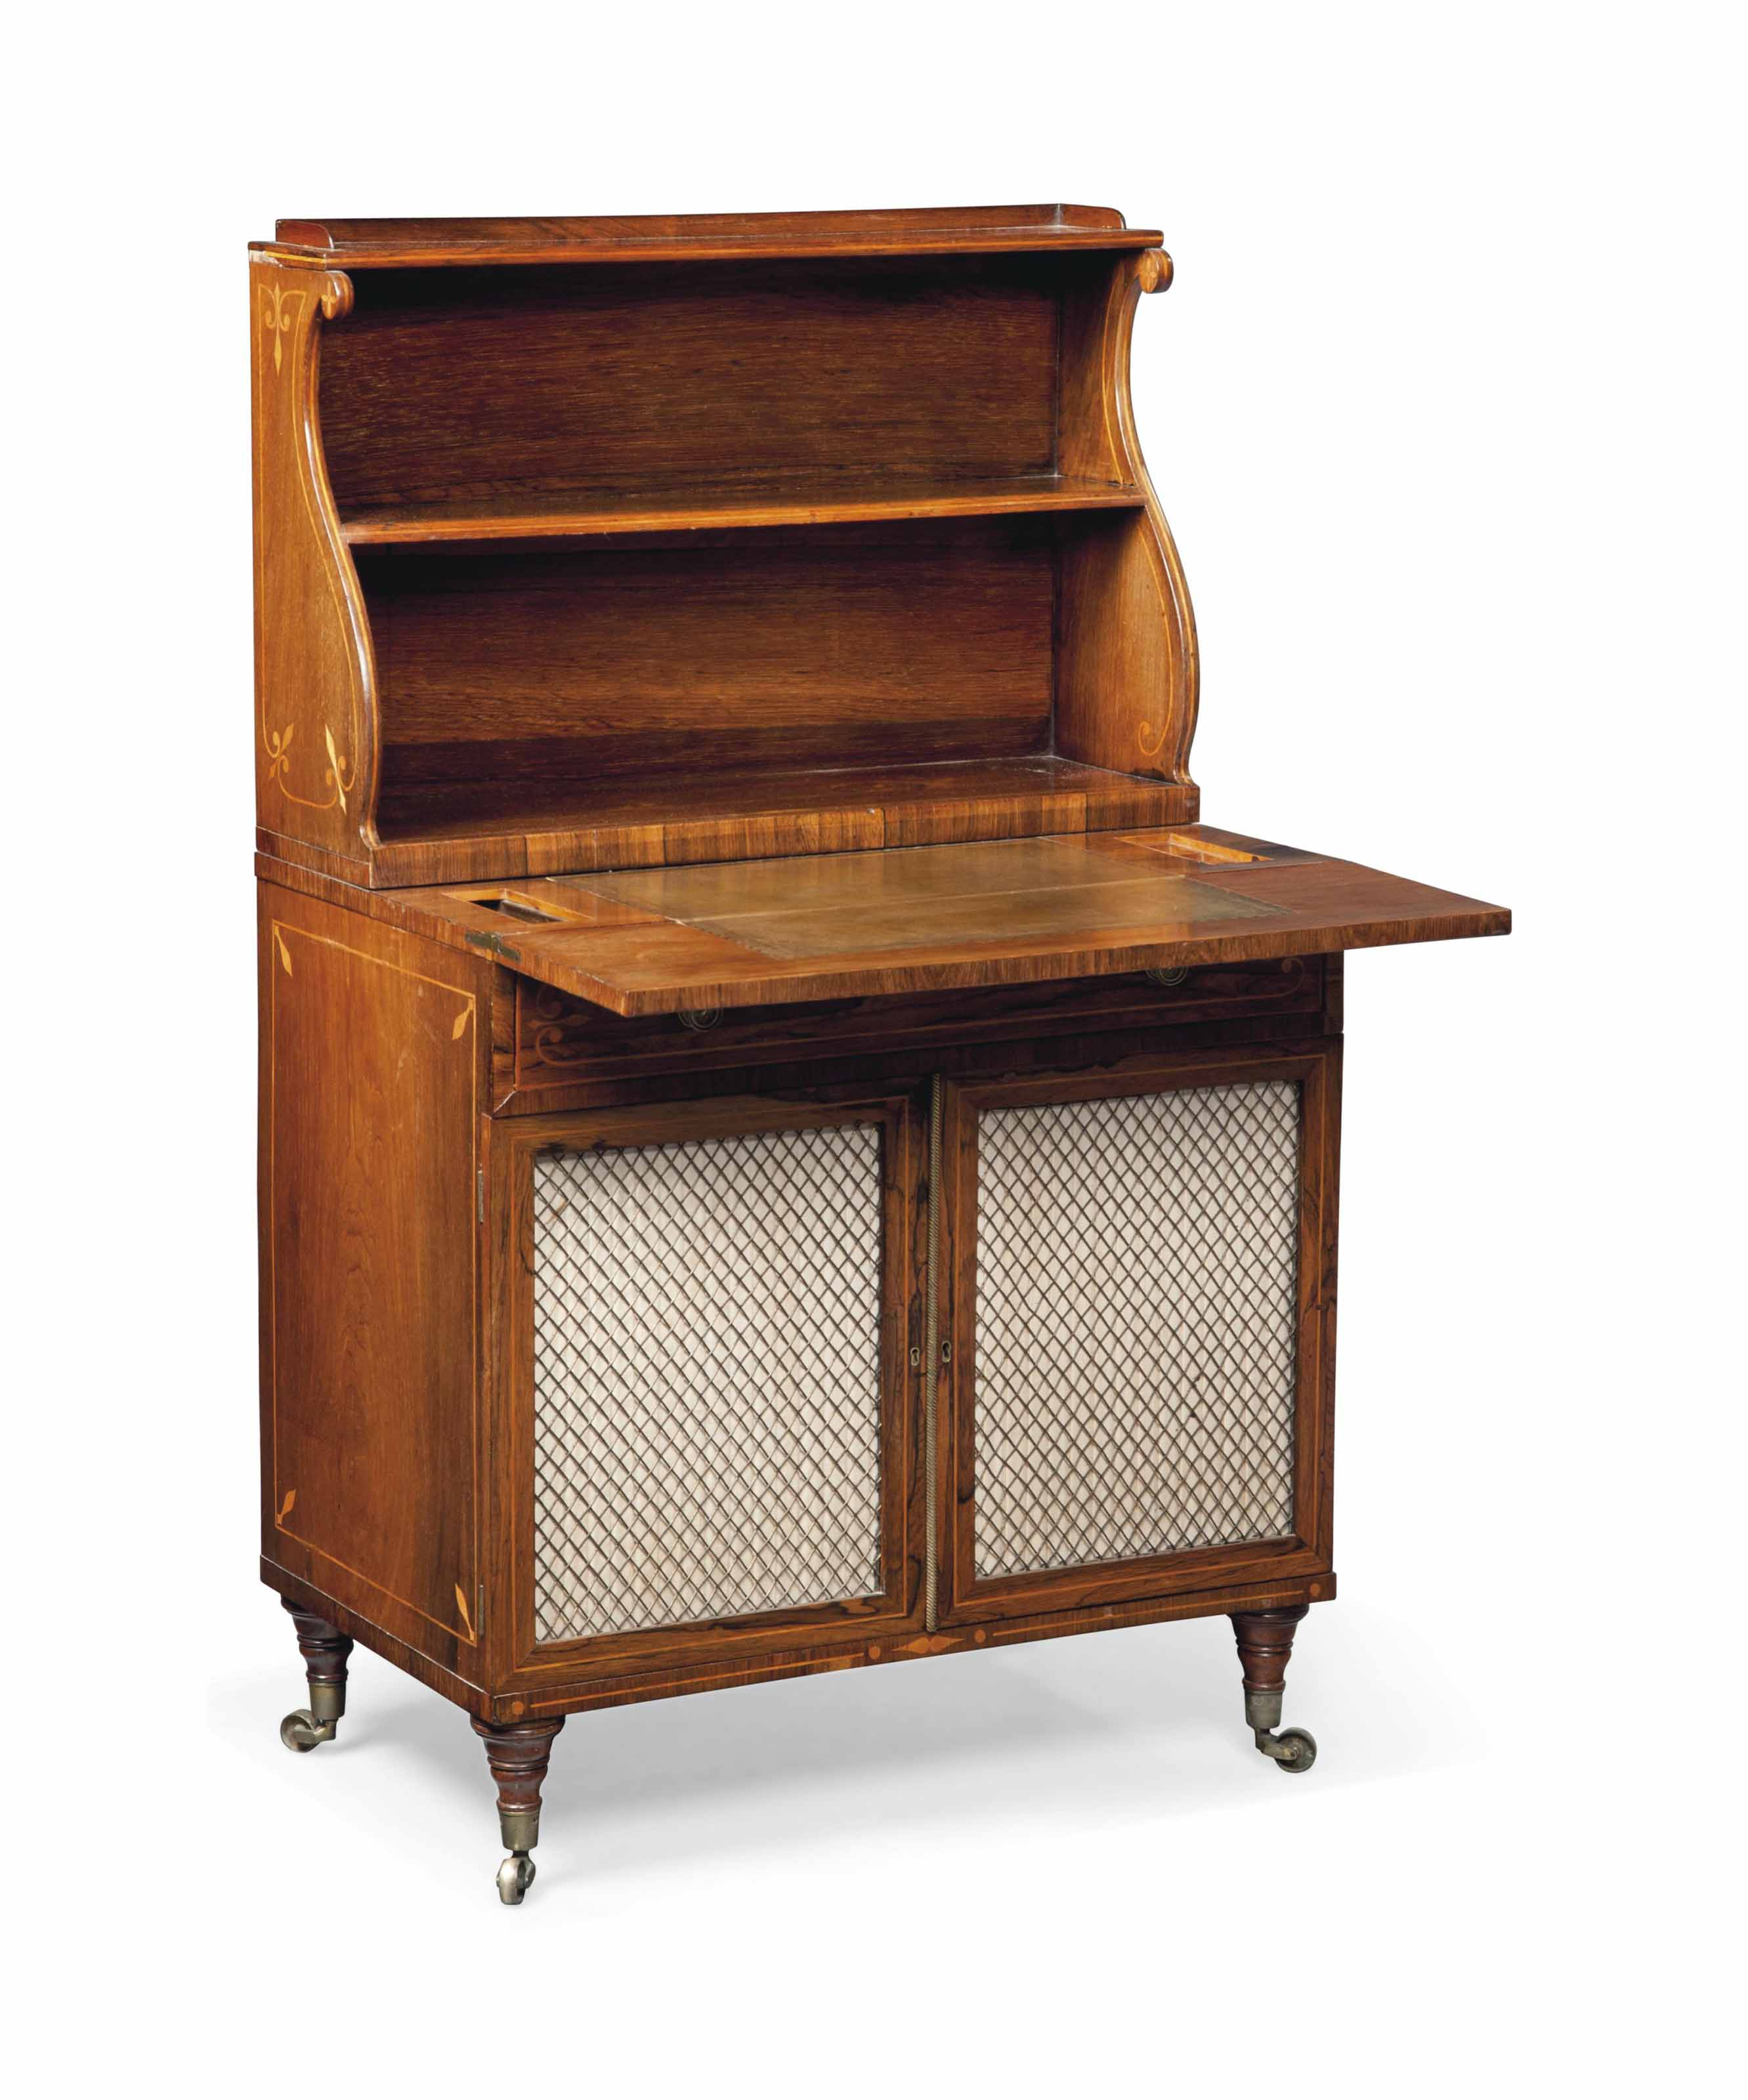 A REGENCY ROSEWOOD AND SYCAMORE INLAID SIDE CABINET